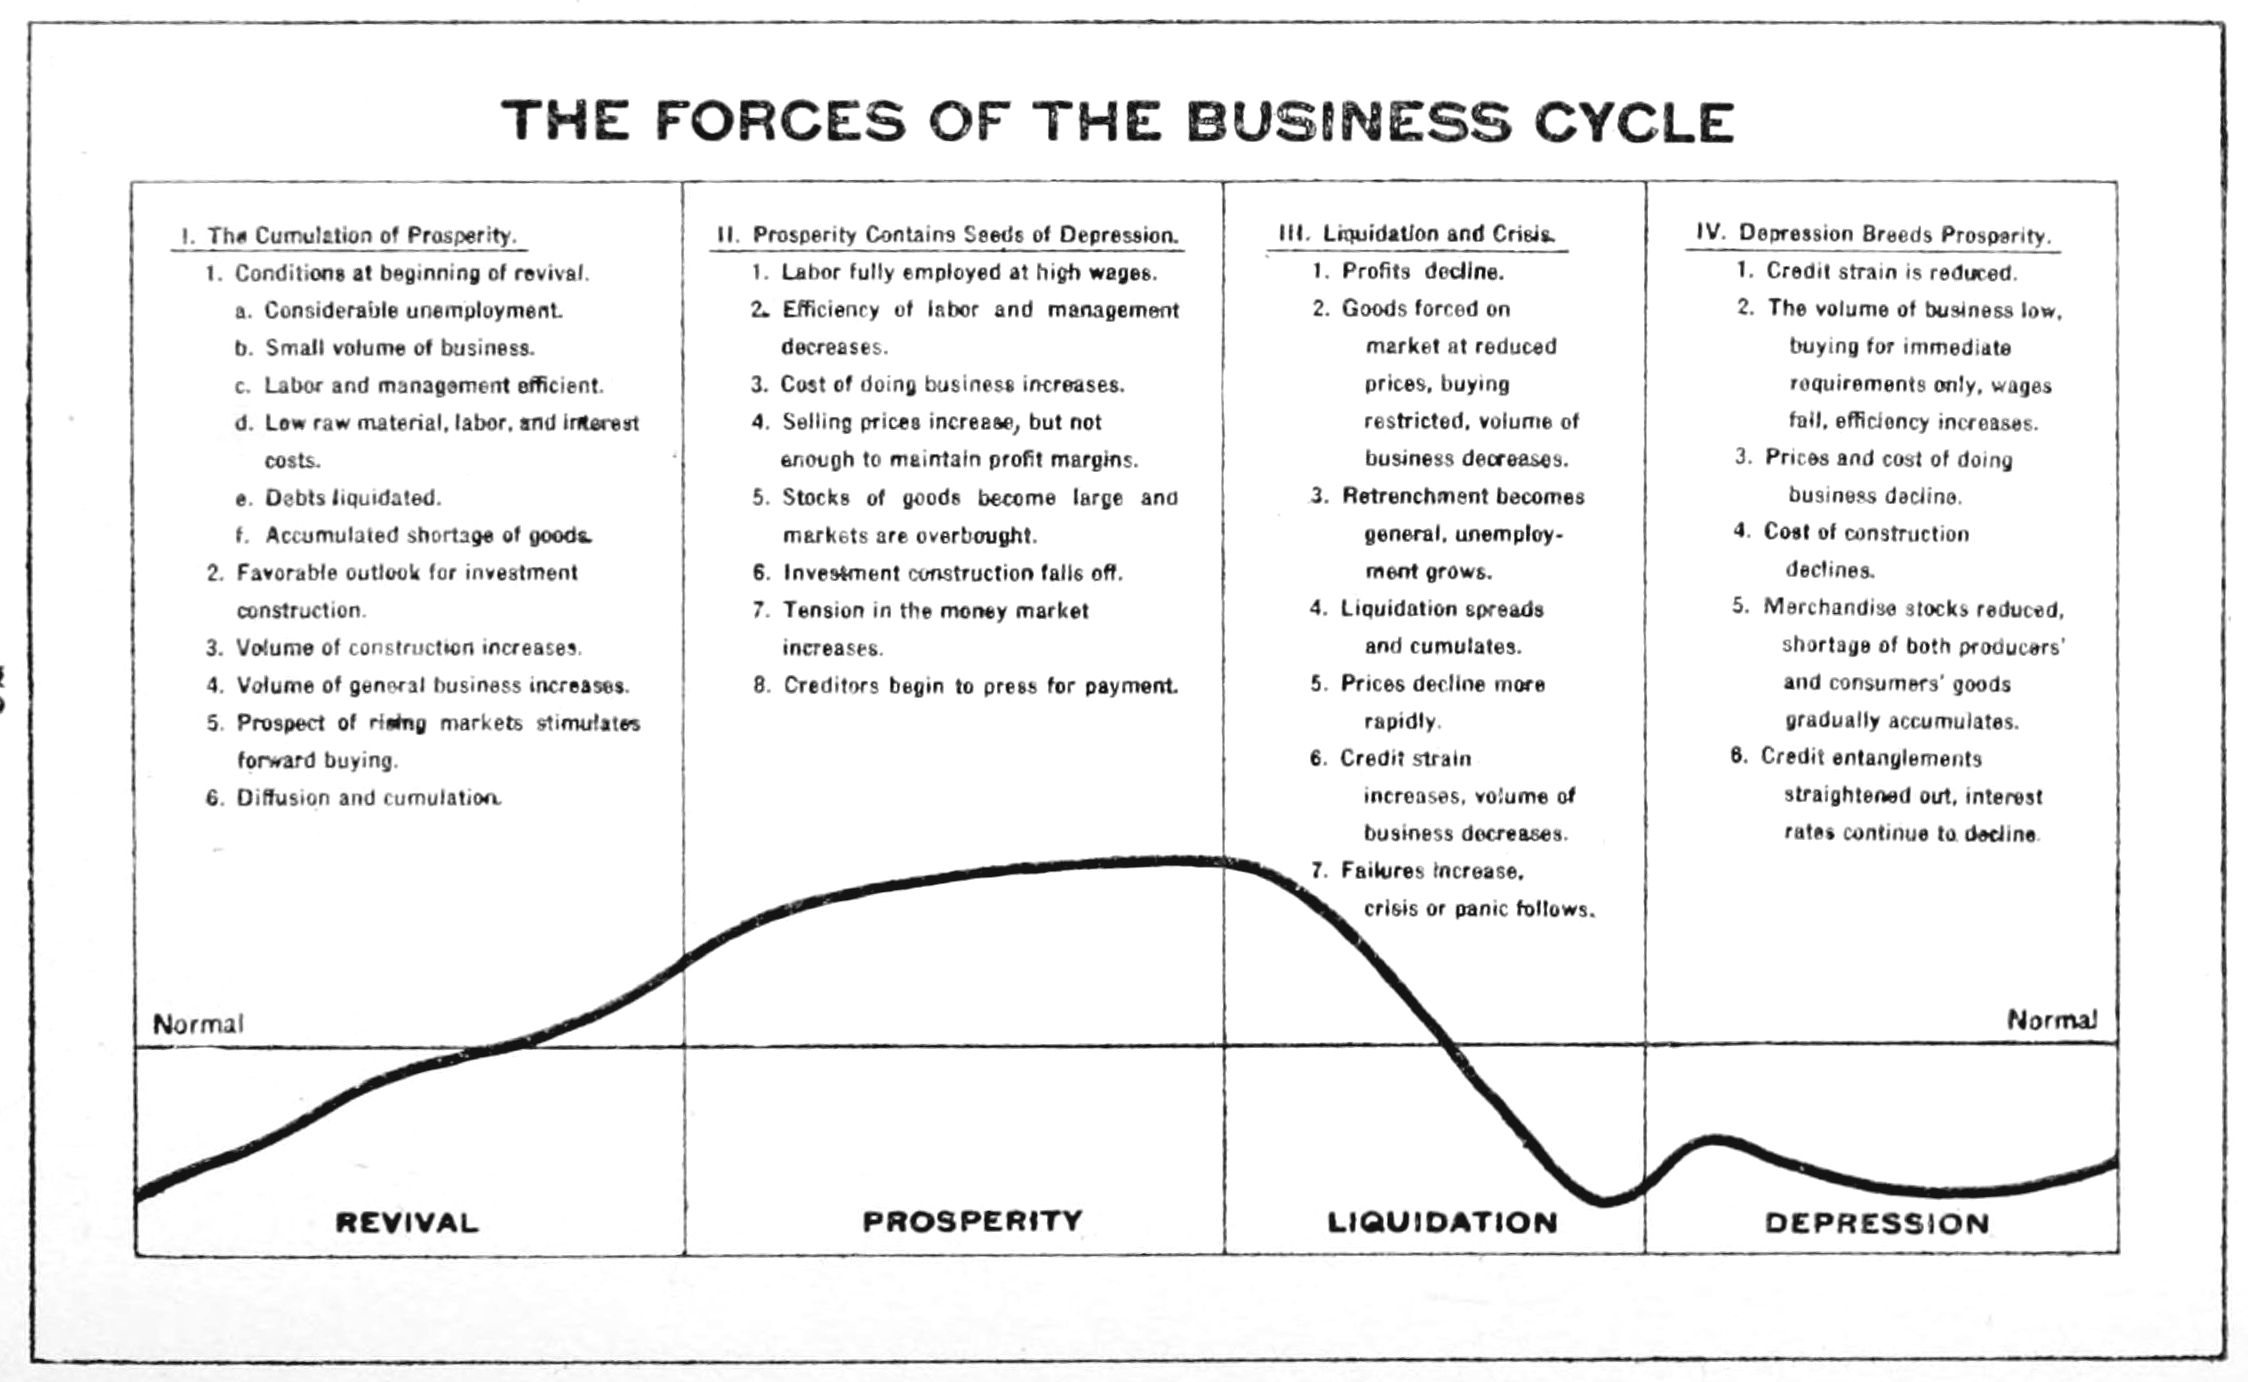 business cycle essay resume book hbs resume builder business cycle  business cycle essay the business cycle and economic growth theory business cycle essay the business cycle